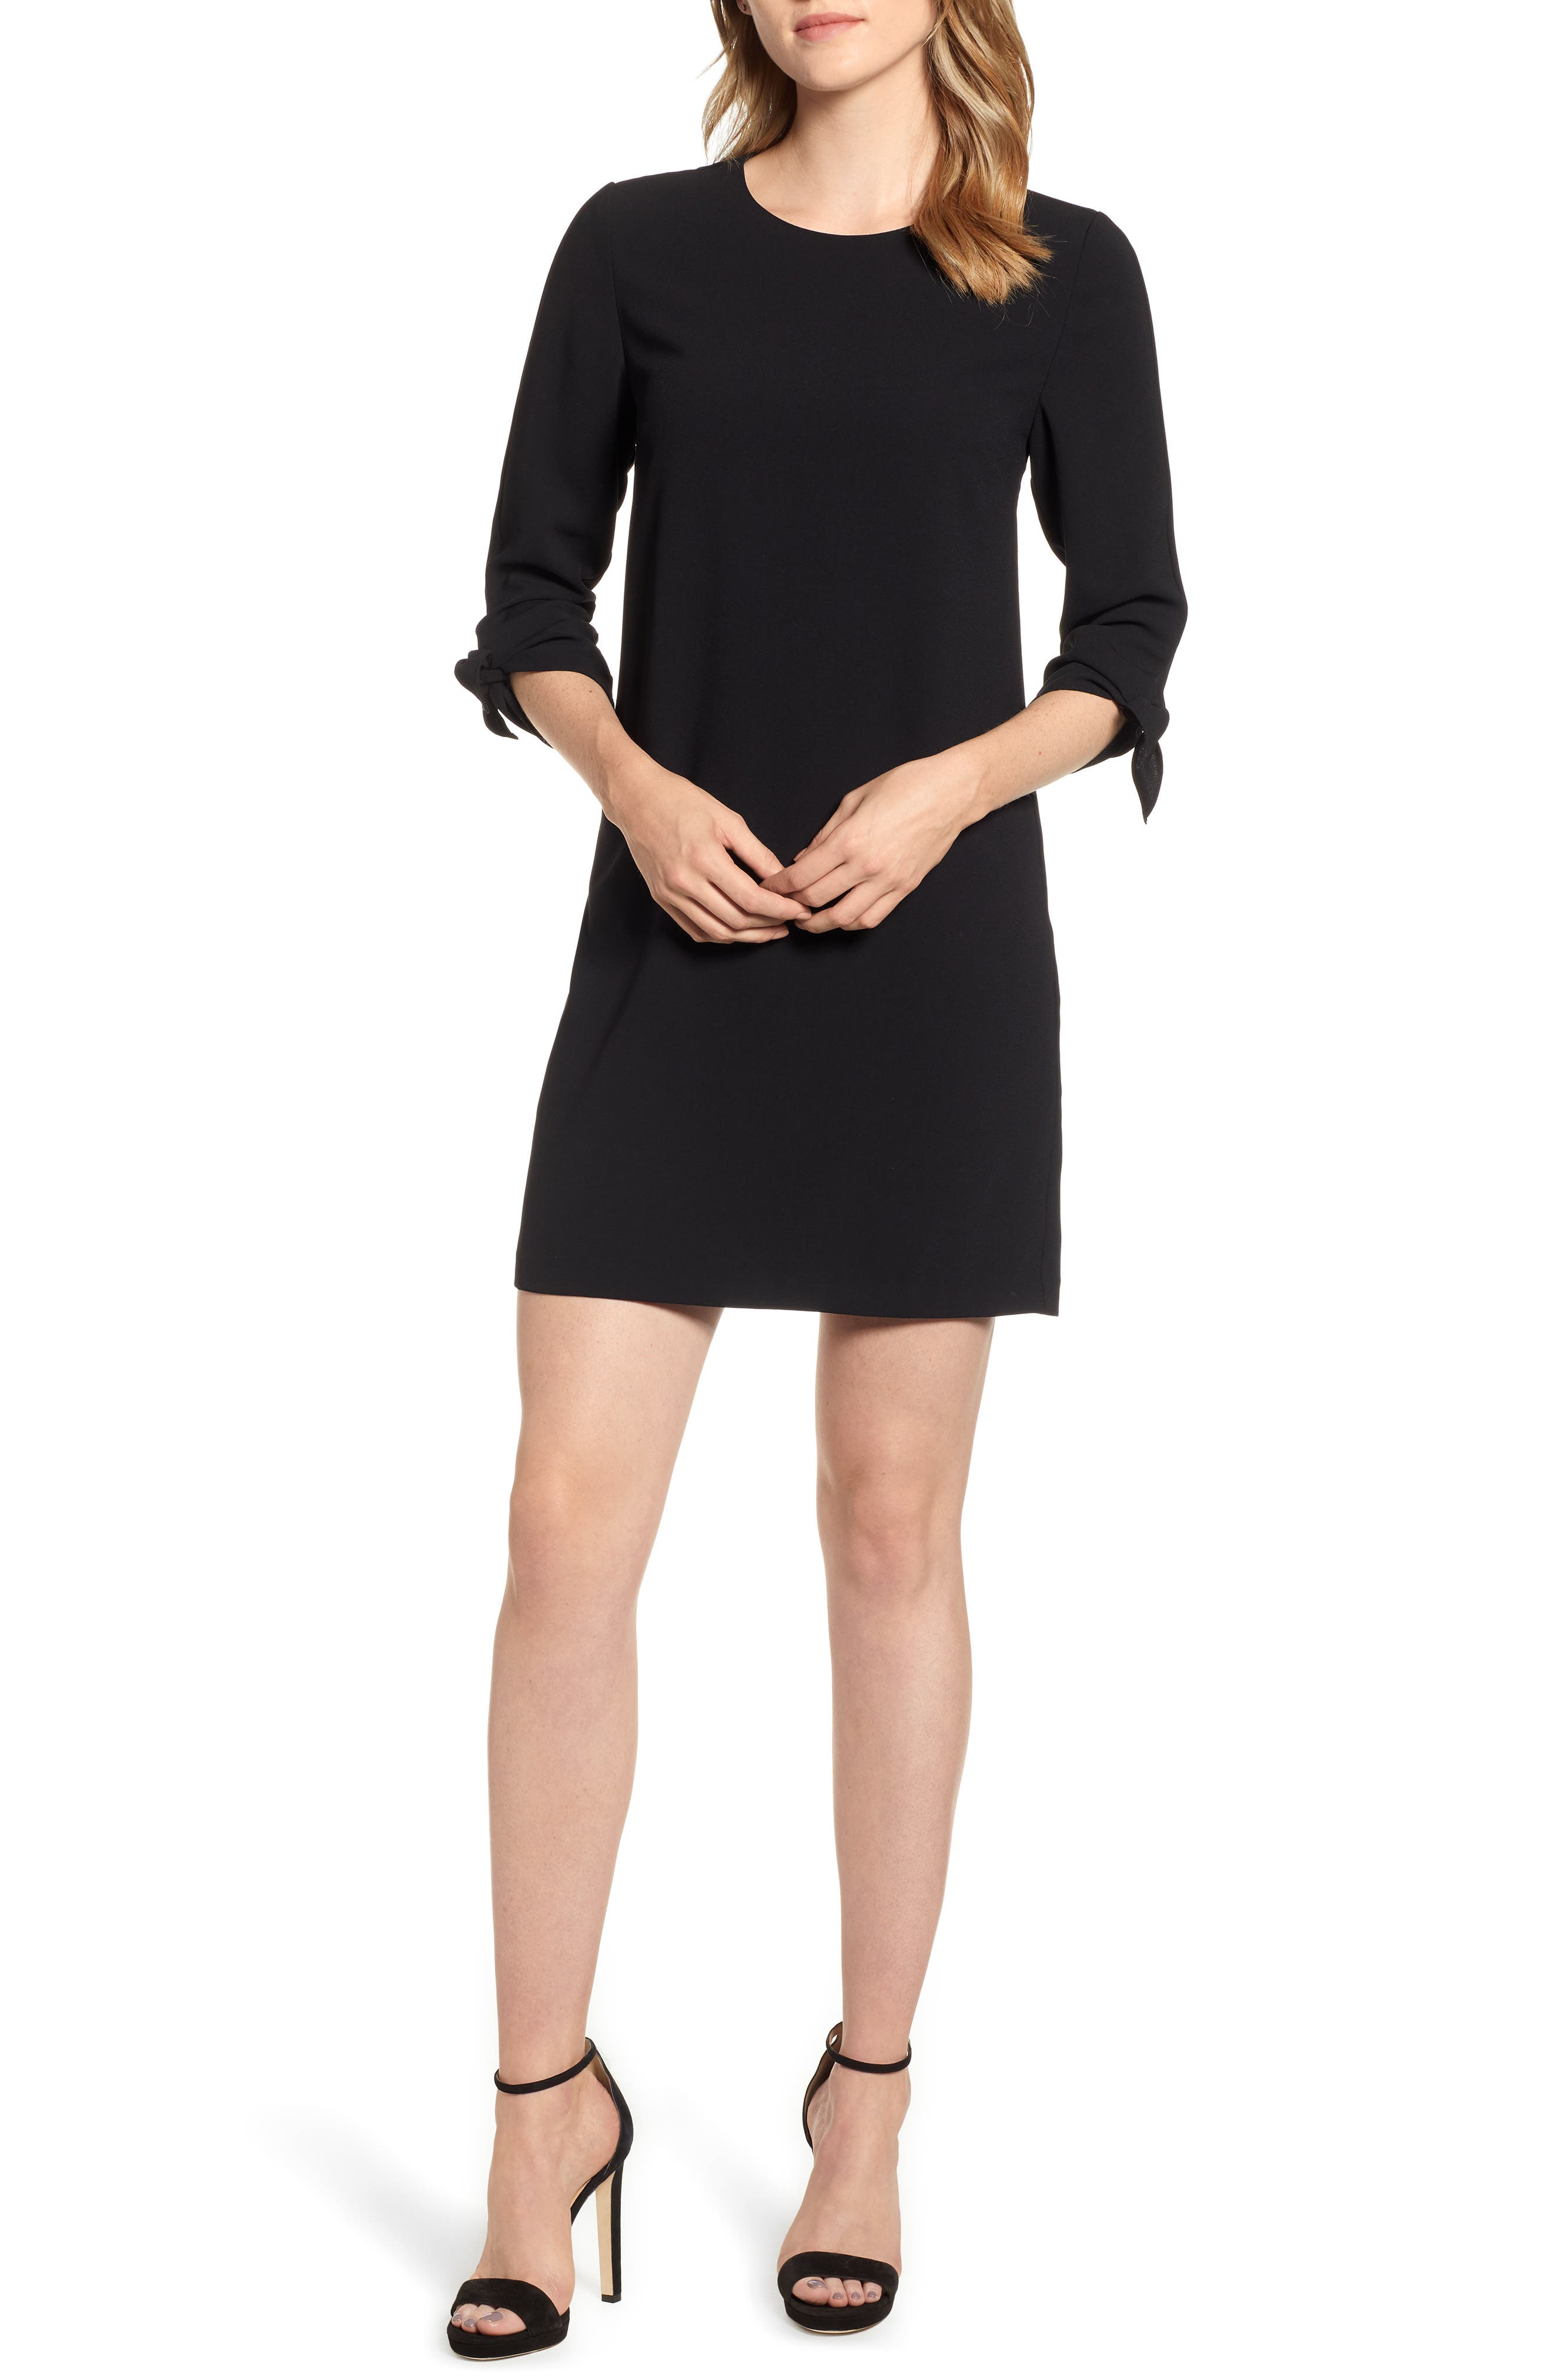 Cece Tie Sleeve Shift Dress, Black